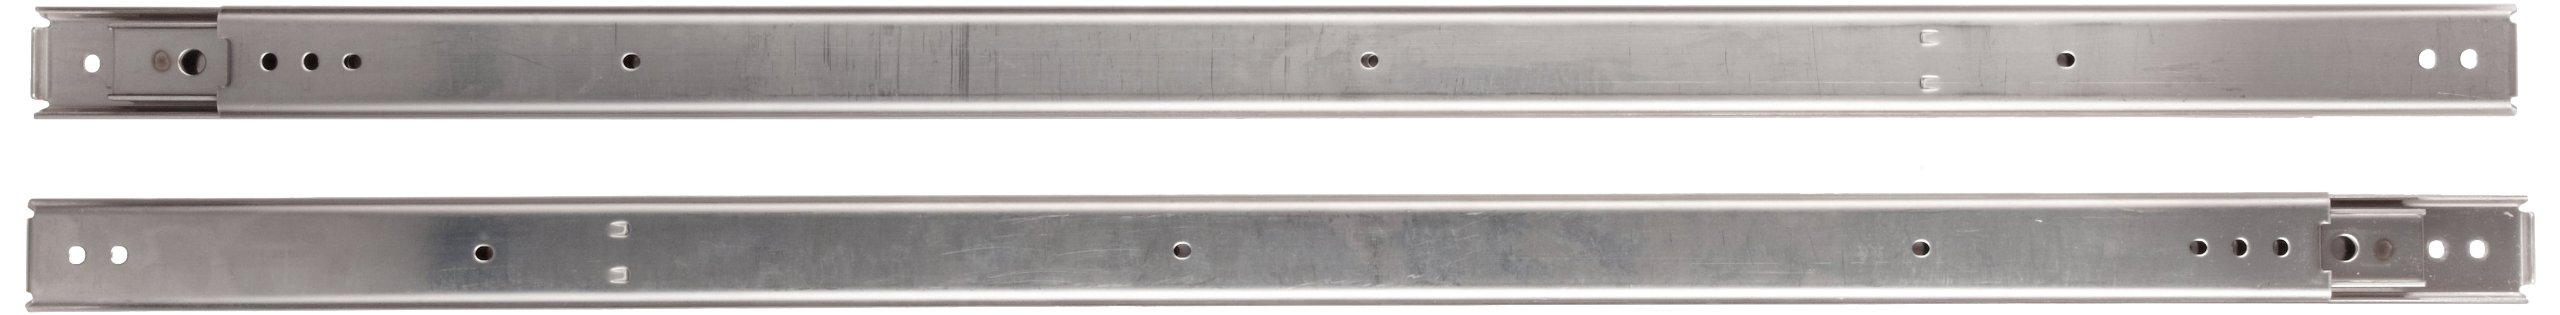 Sugastune ESR-6 304 Stainless Steel Drawer Slide, Full Extension, Positive Stop, 28'' Closed, 28-13/16'' Travel, 99lbs/Pack (1 Pair) by LAMP by Sugatsune